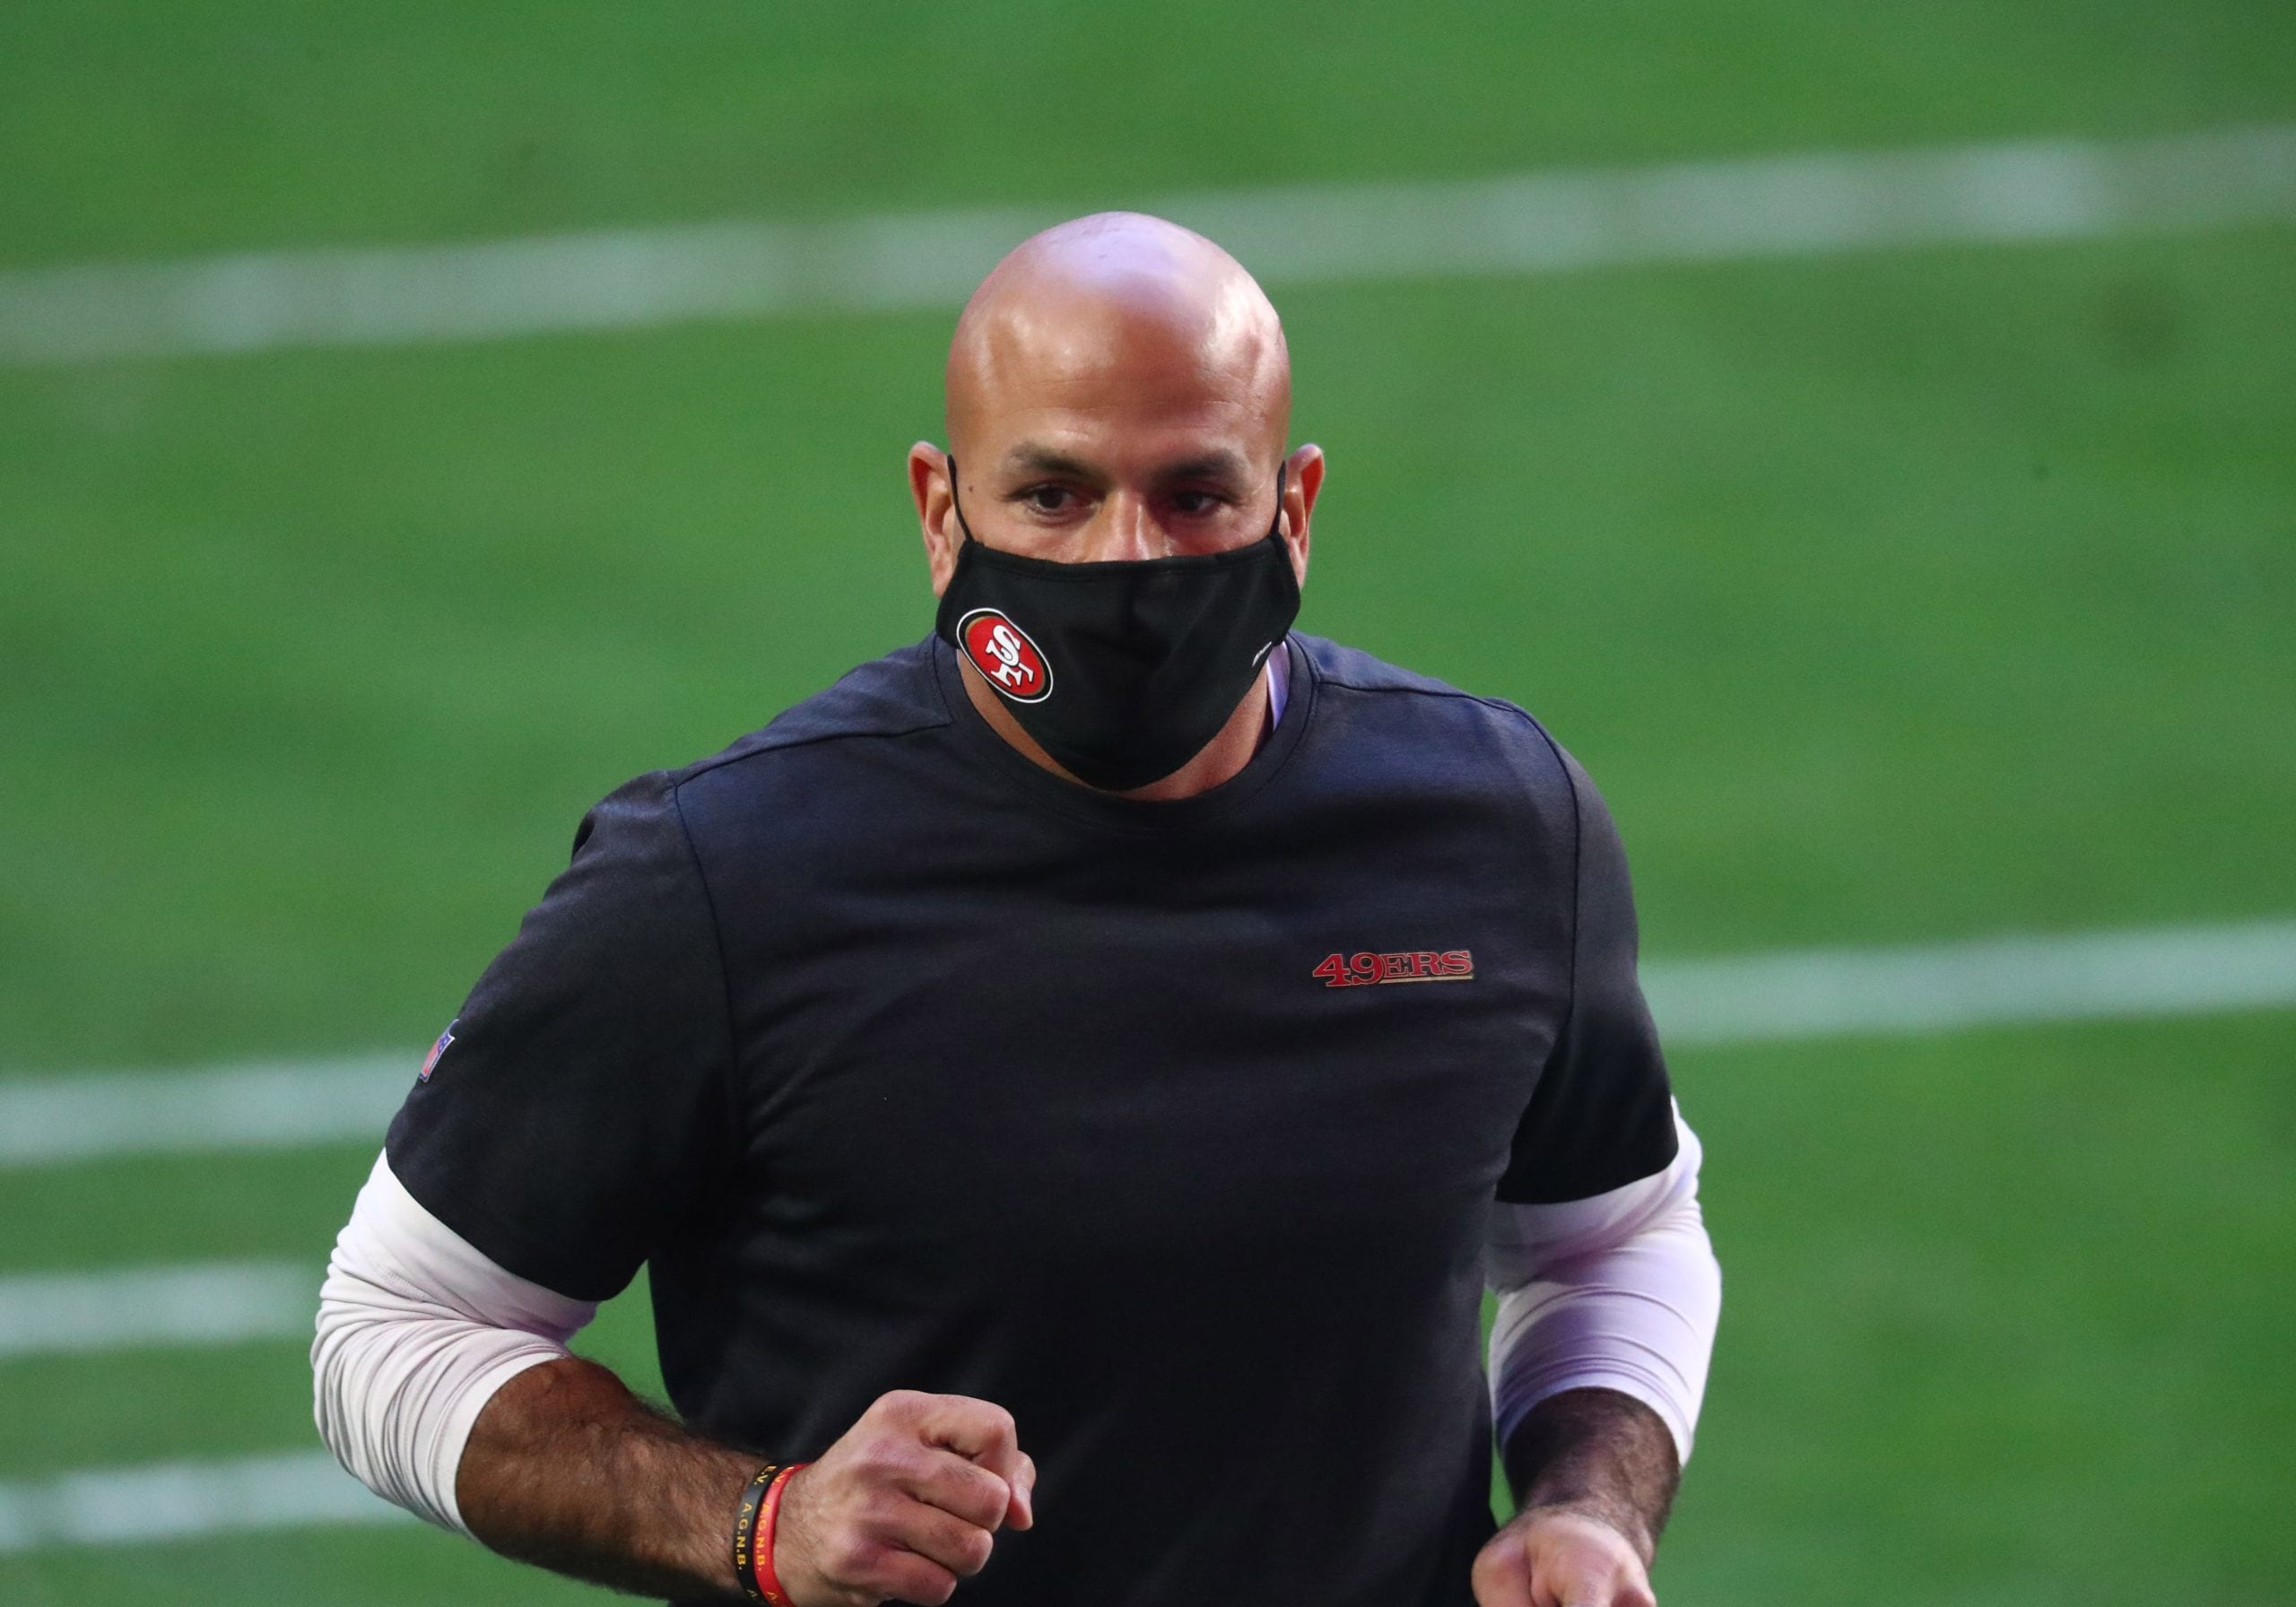 Robert Saleh undecided about Jets starting QB in 2021